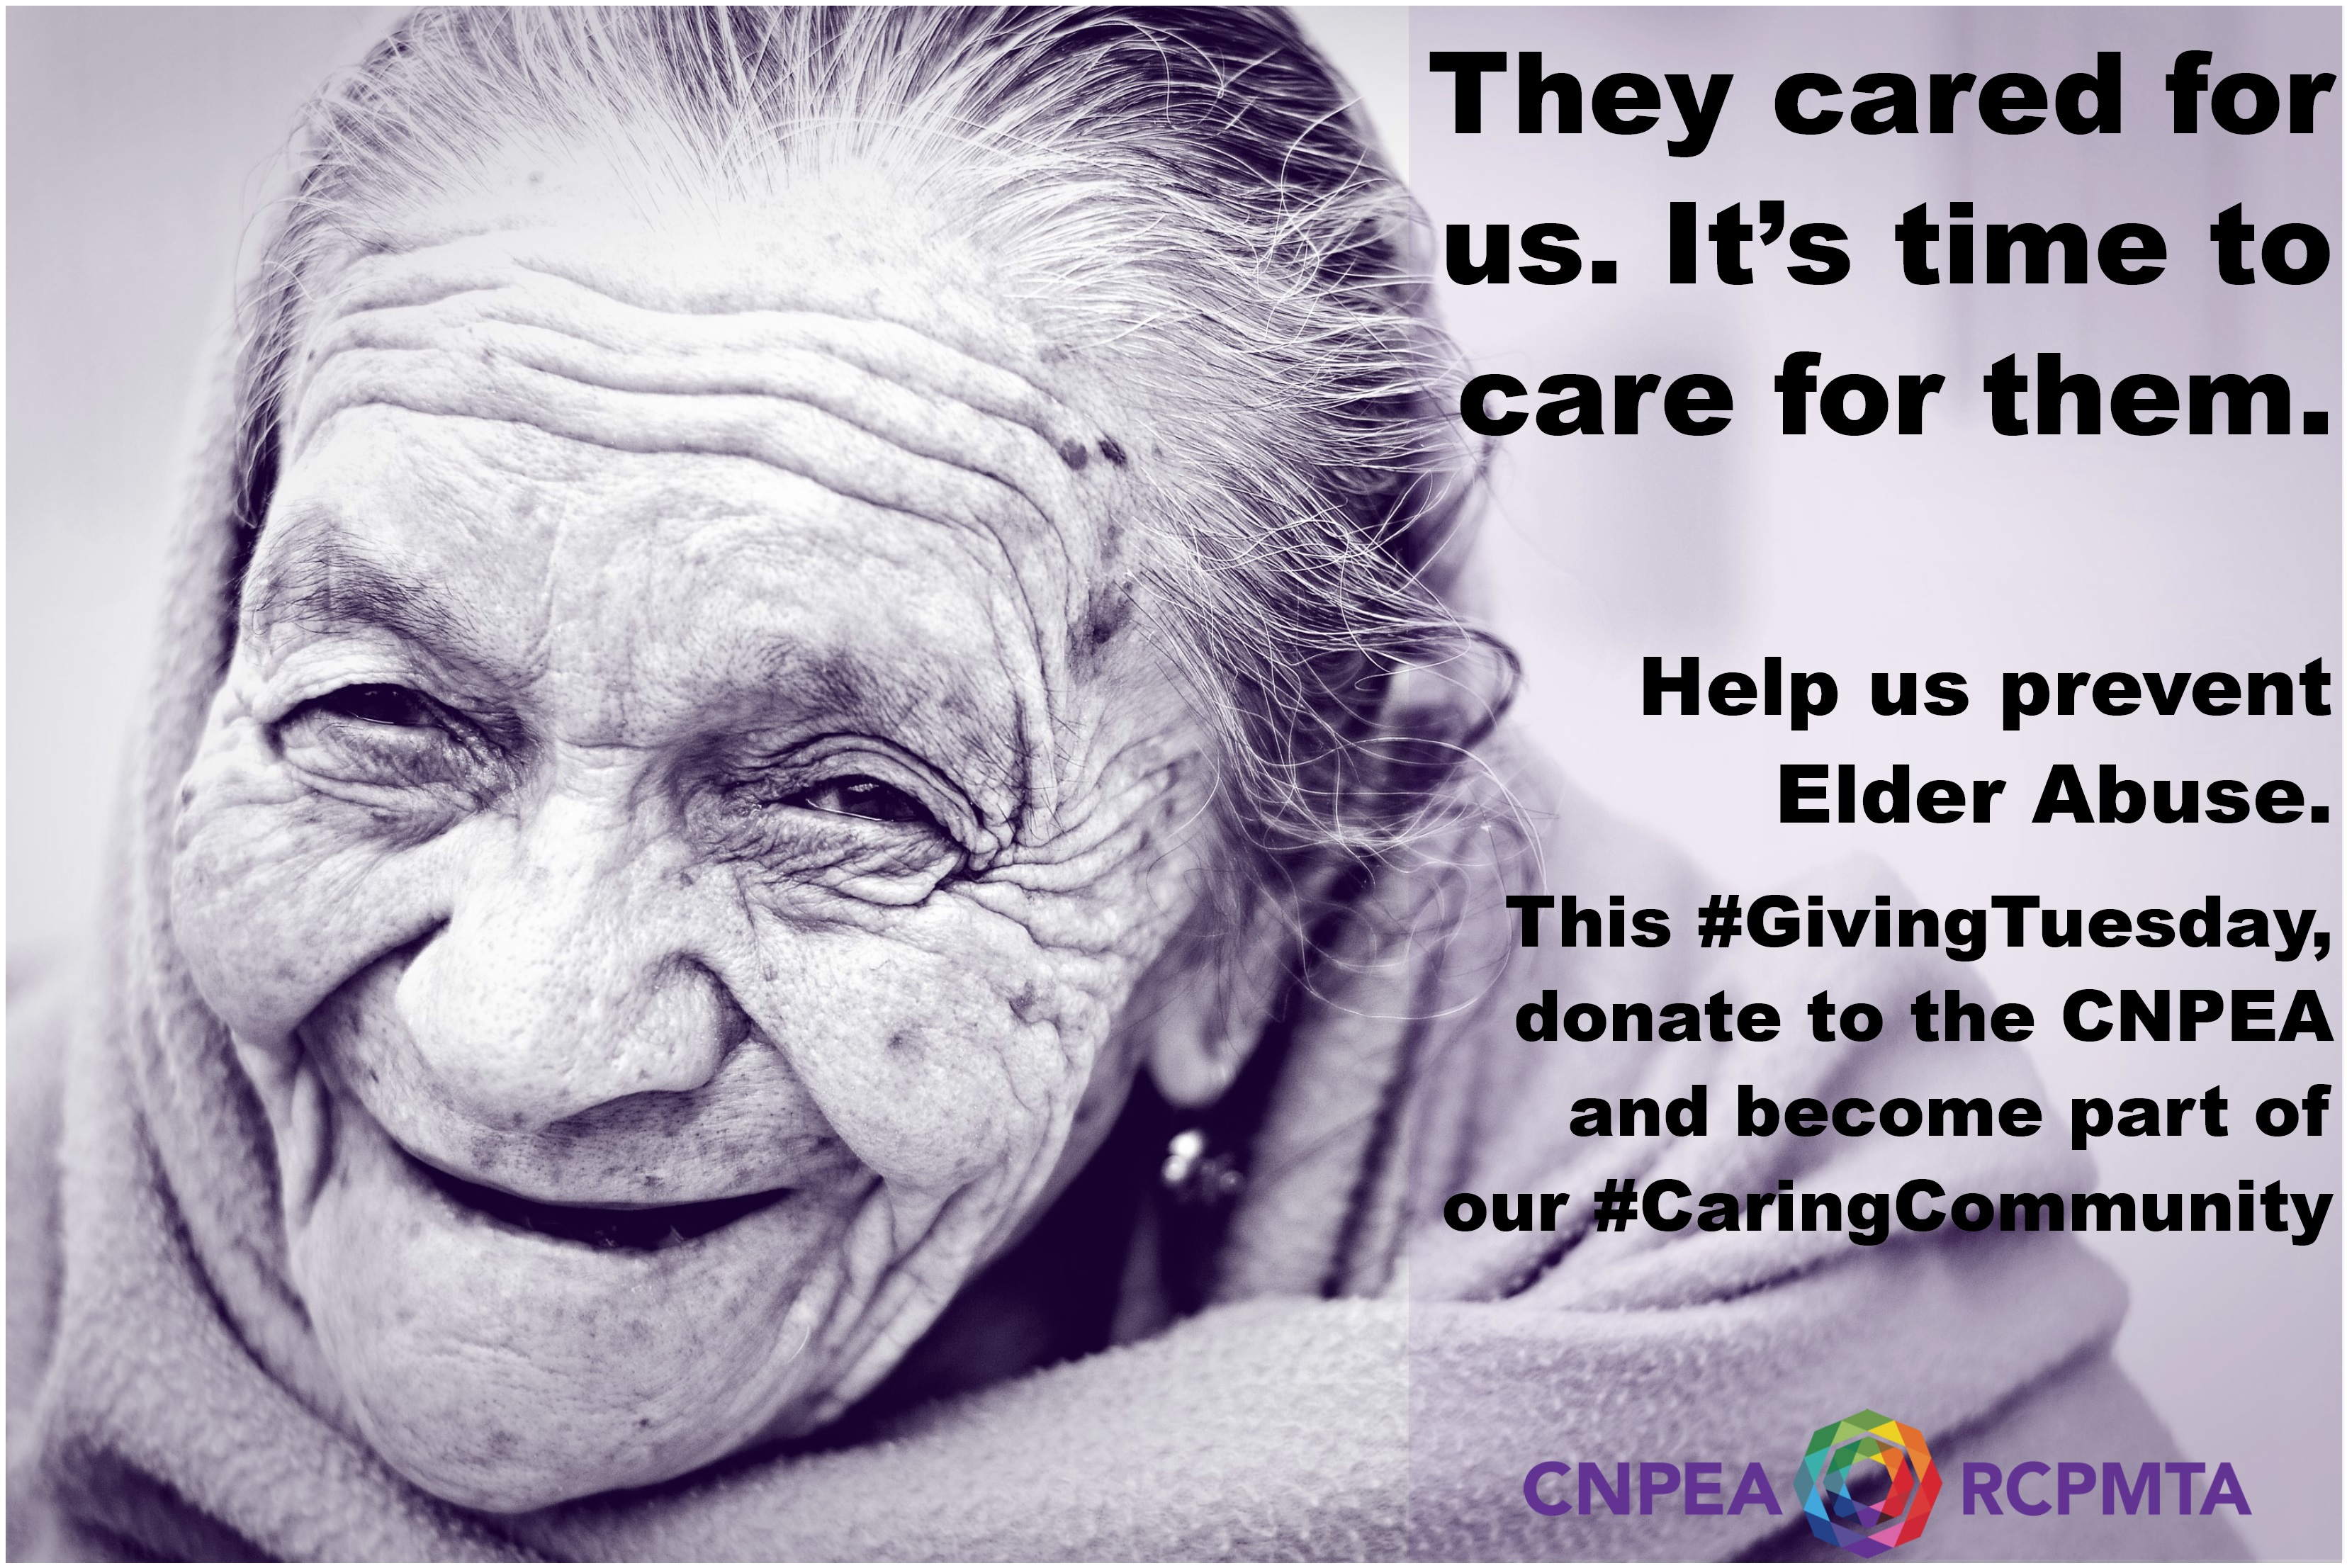 care4them2 caring community